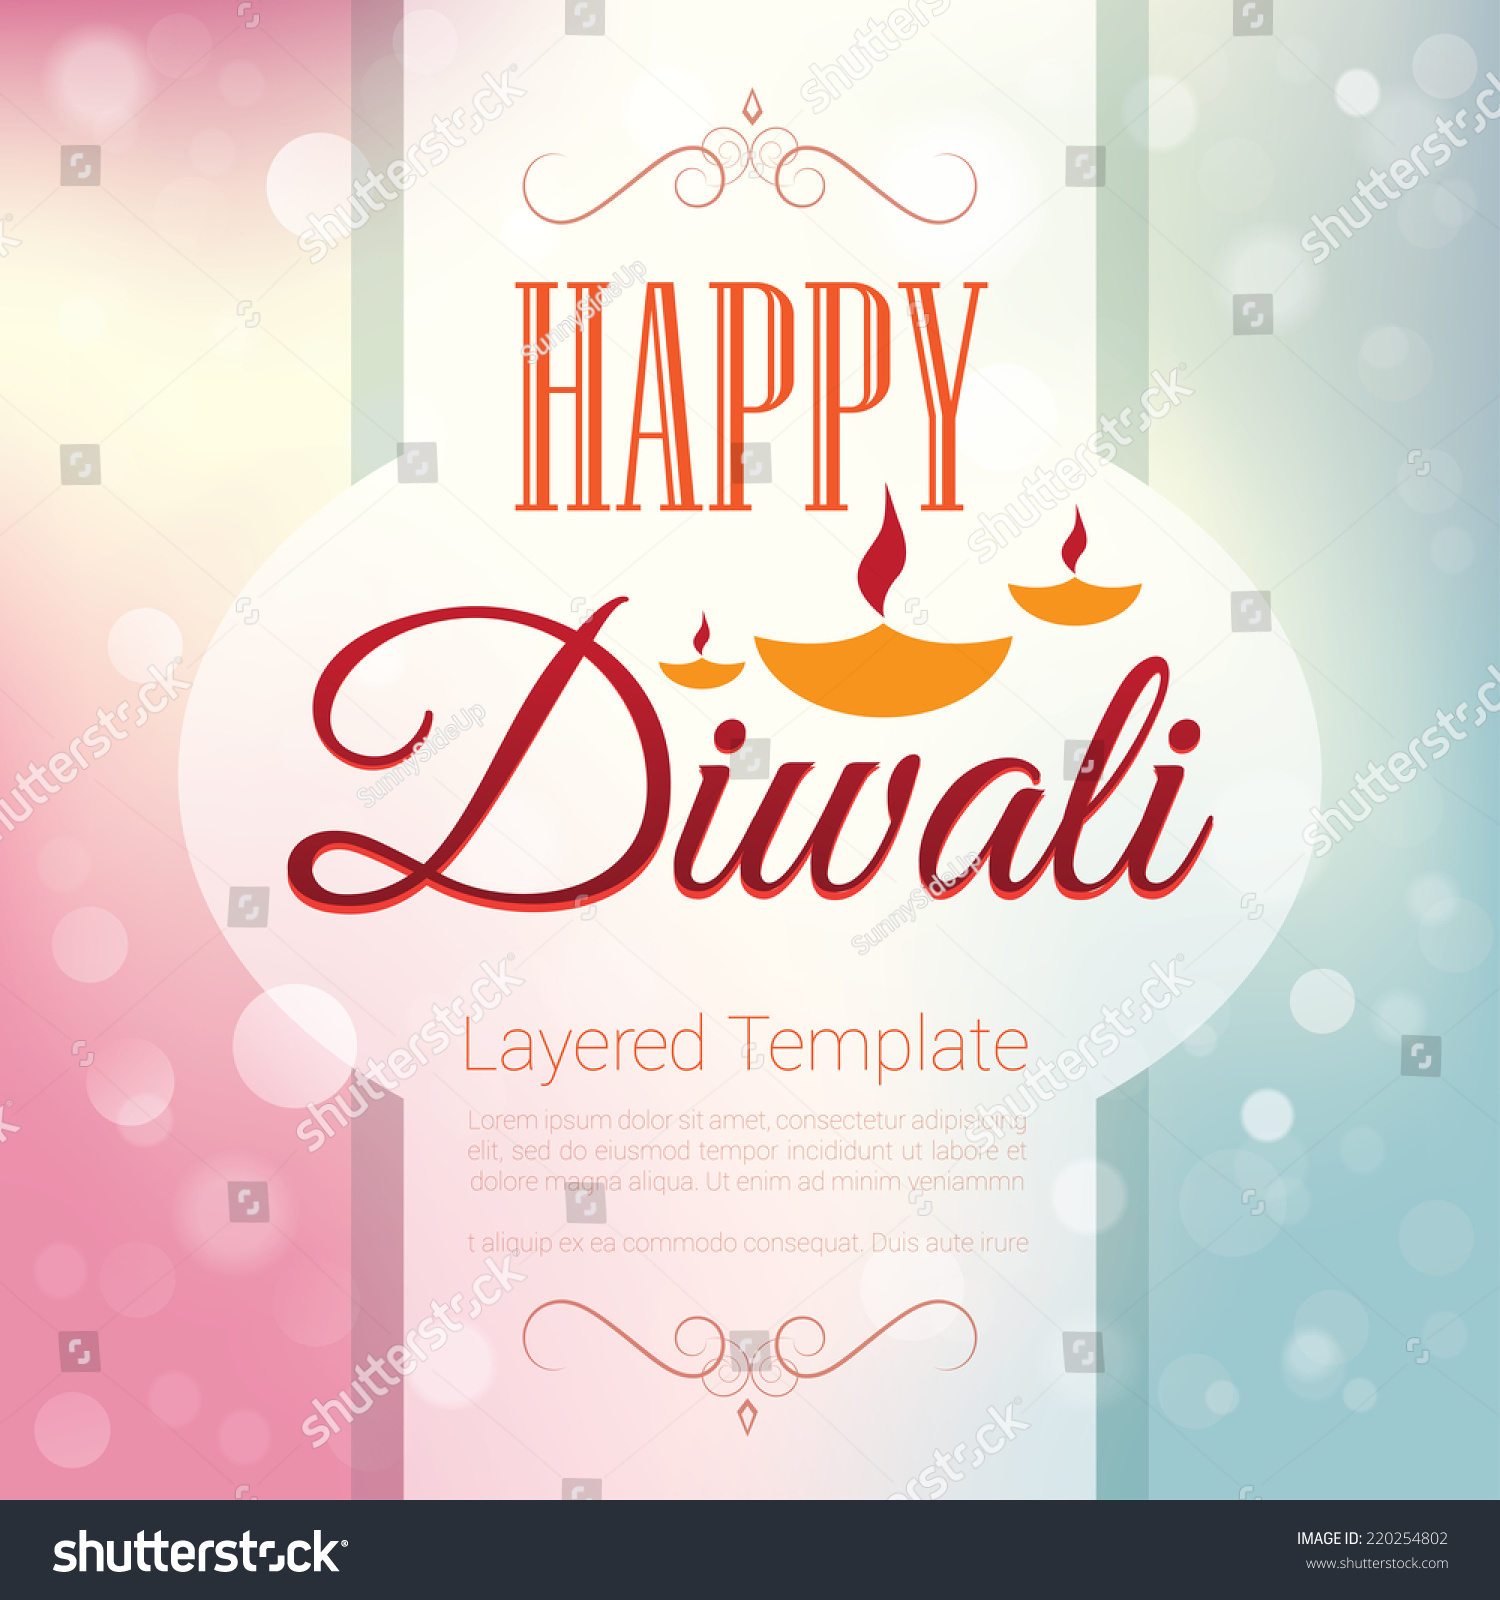 Poster backgrounds design - Happy Diwali Poster Template Background Design Greeting